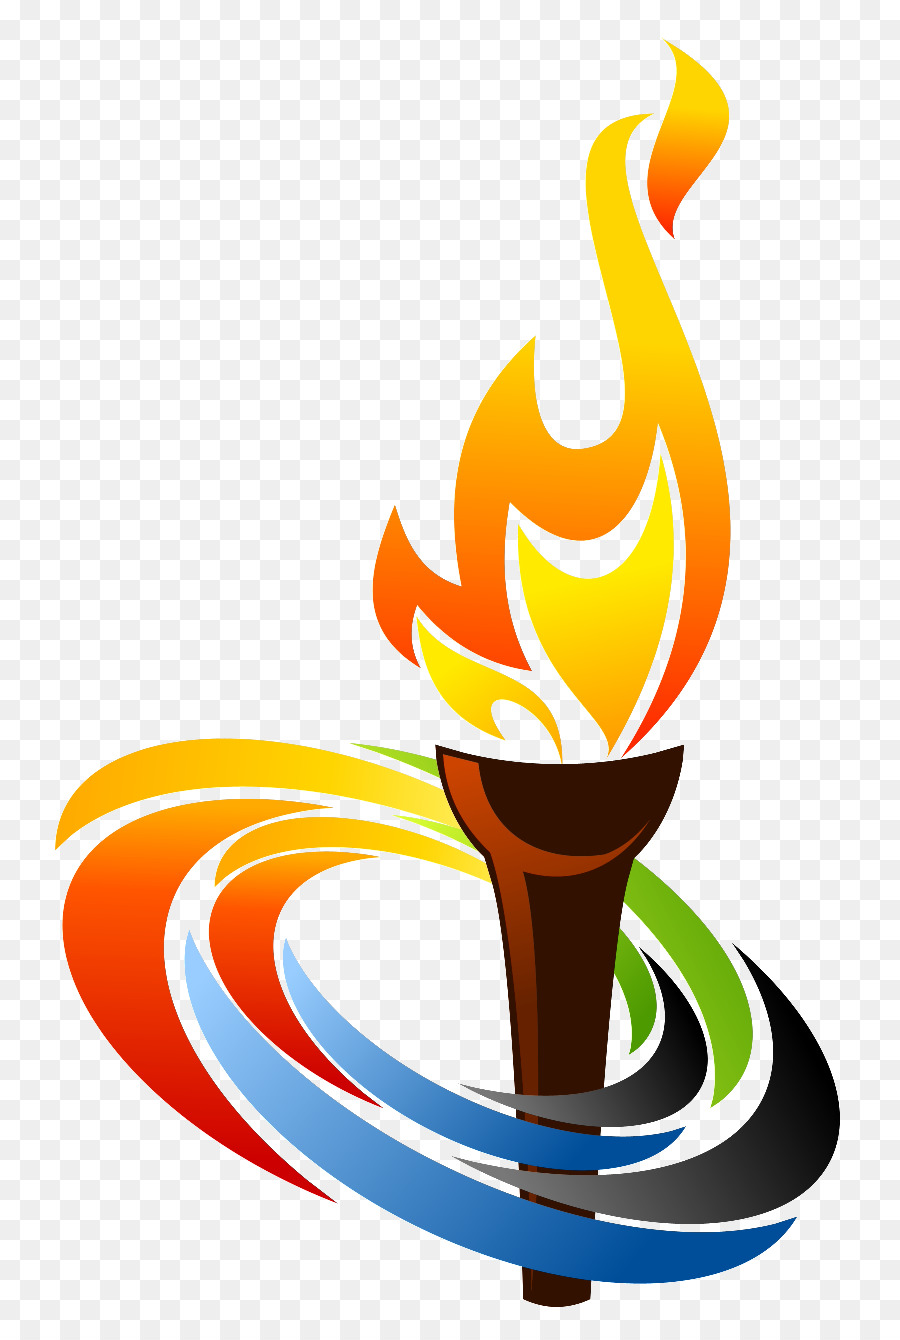 winter olympic games 2016 summer olympics 2018 winter olympics torch rh kisspng com winter olympics clipart black and white winter olympics clipart bundle